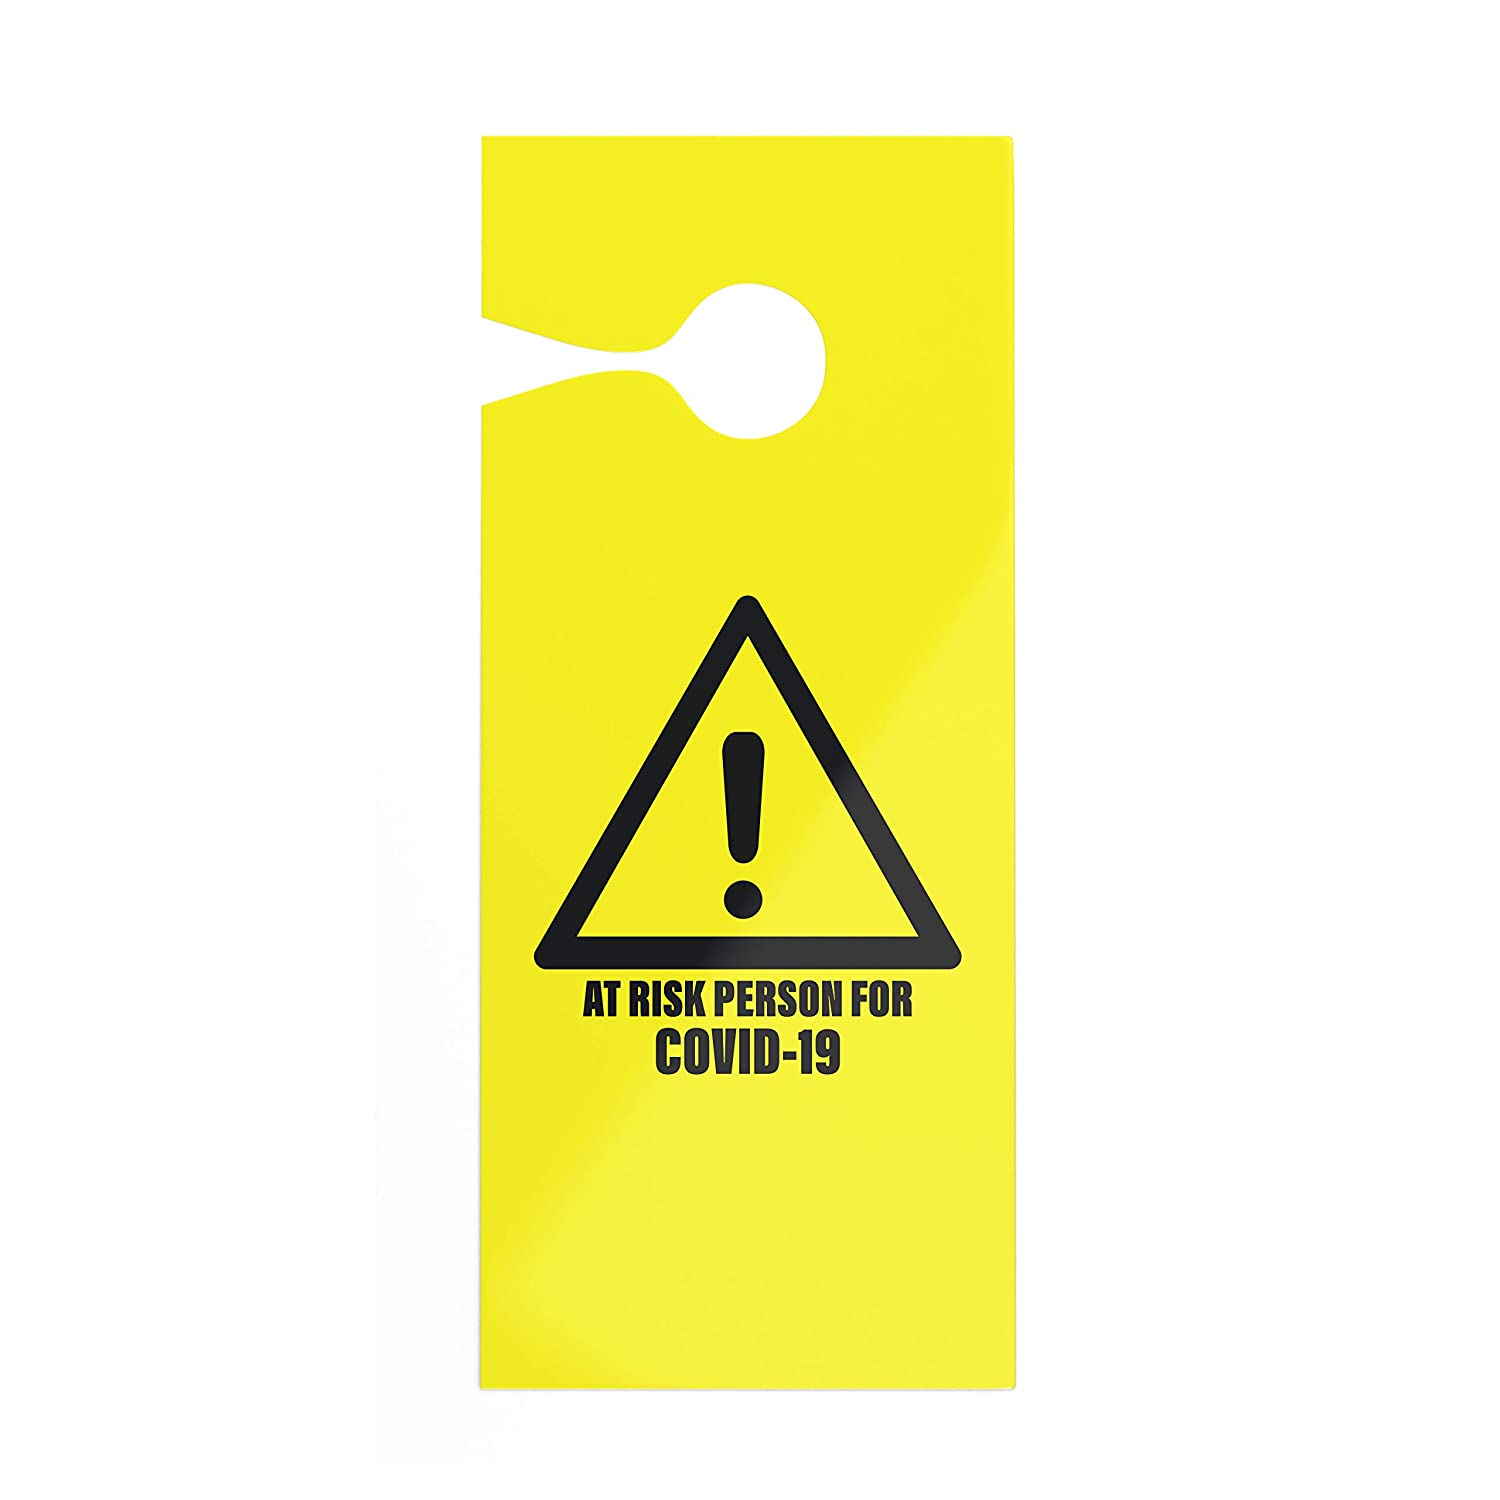 Pro-Graphx Door Hanger - at Risk Person for Coronavirus COVID-19 Quarantine Self Isolation Do Not Disturb Sign for Meeting in Session, Office, Home, Clinic, Therapists, Hotel, Health Care (1-Pack)